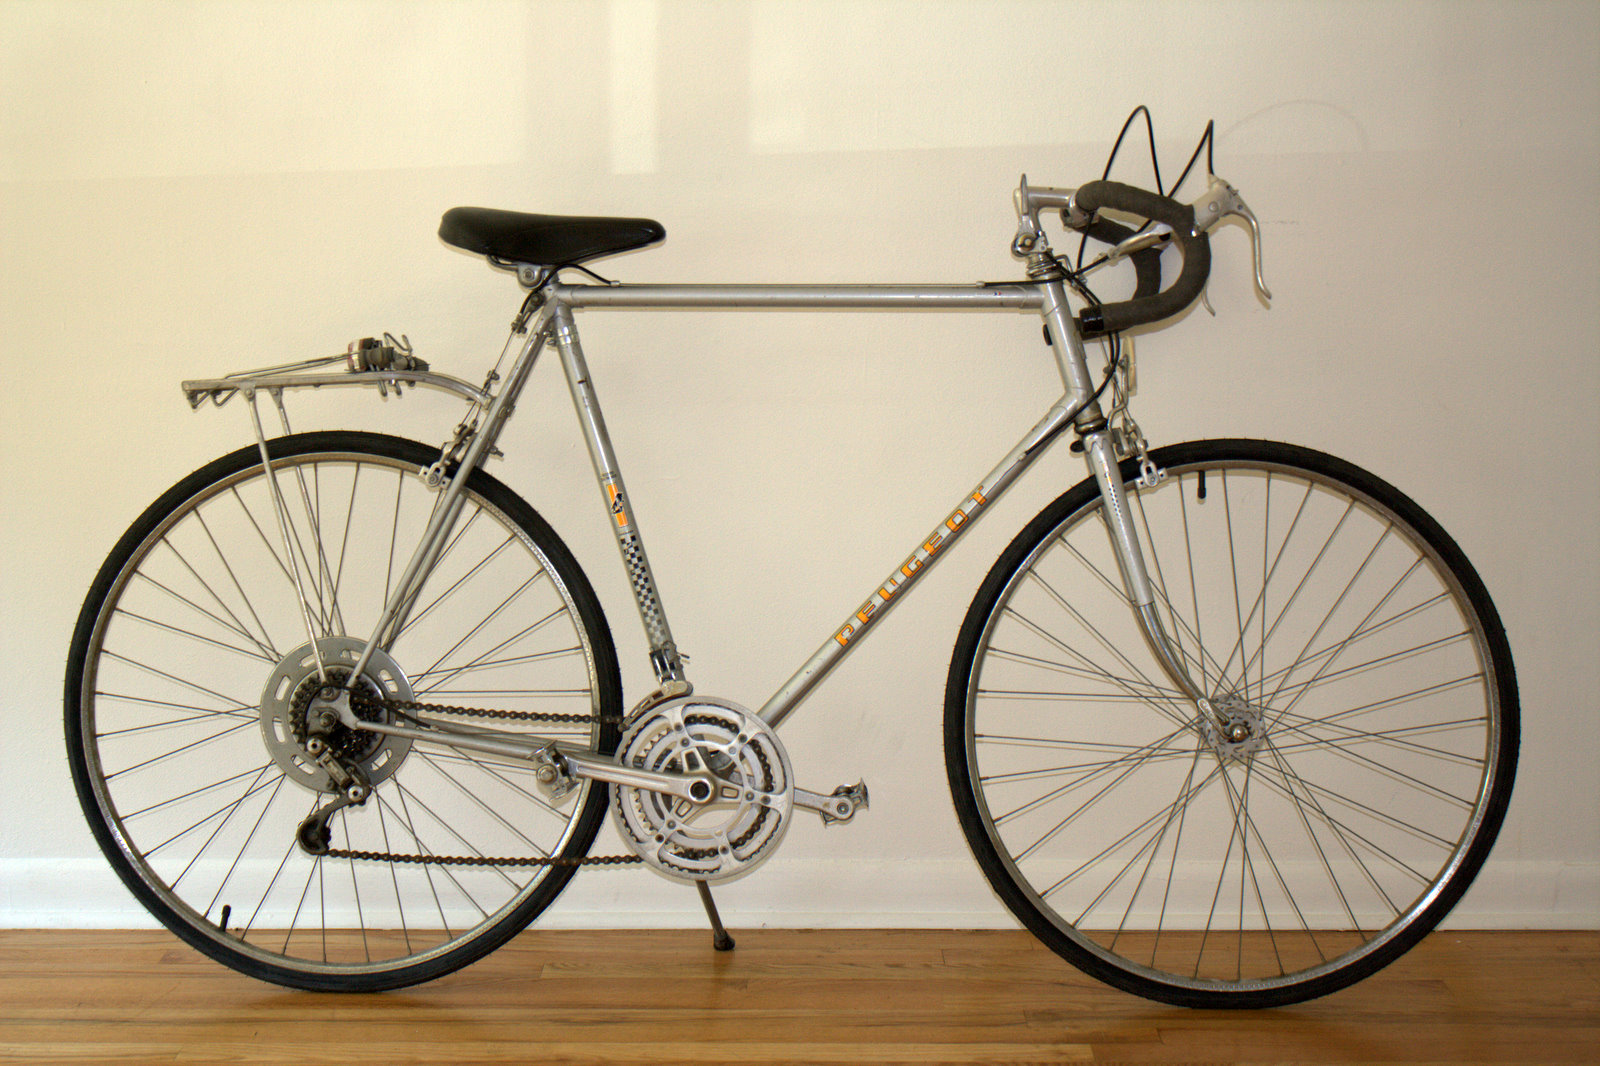 http://upload.wikimedia.org/wikipedia/commons/c/cb/1979_Peugeot_UO-9_Super_Sport_road_bike.jpg